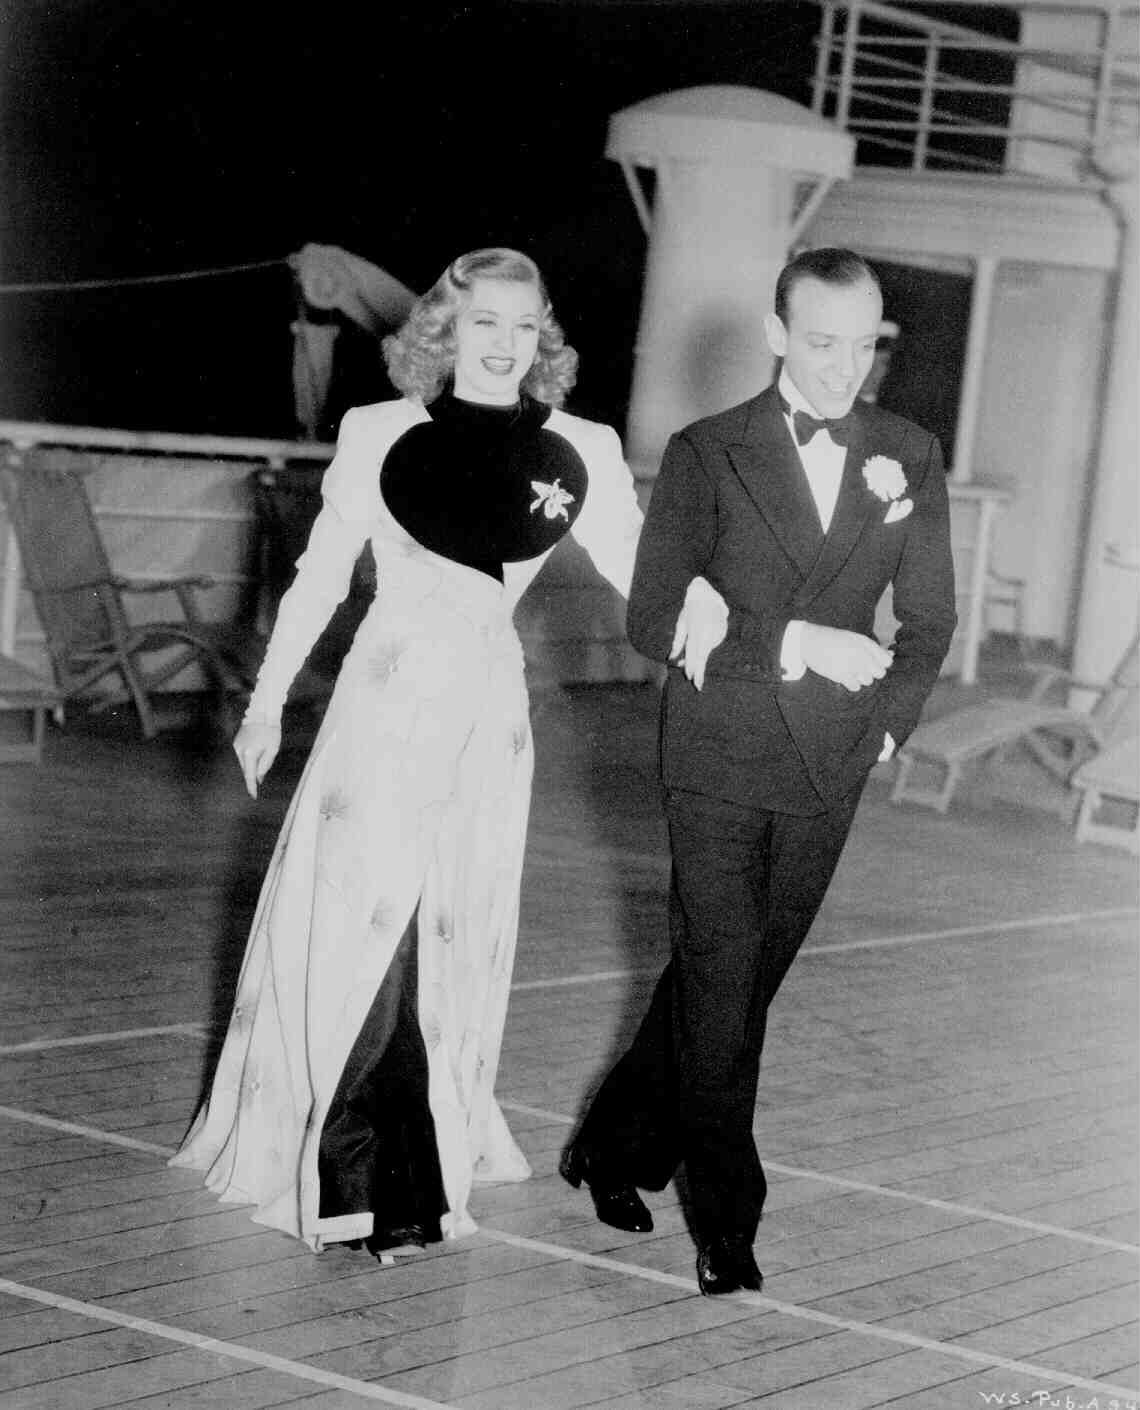 Ginger Rogers With Fred Astaire In Rehearsal For Walking The Dog Sequnce On The Set Of Shall We Dance 1937 Fred And Ginger Fred Astaire Ginger Rogers